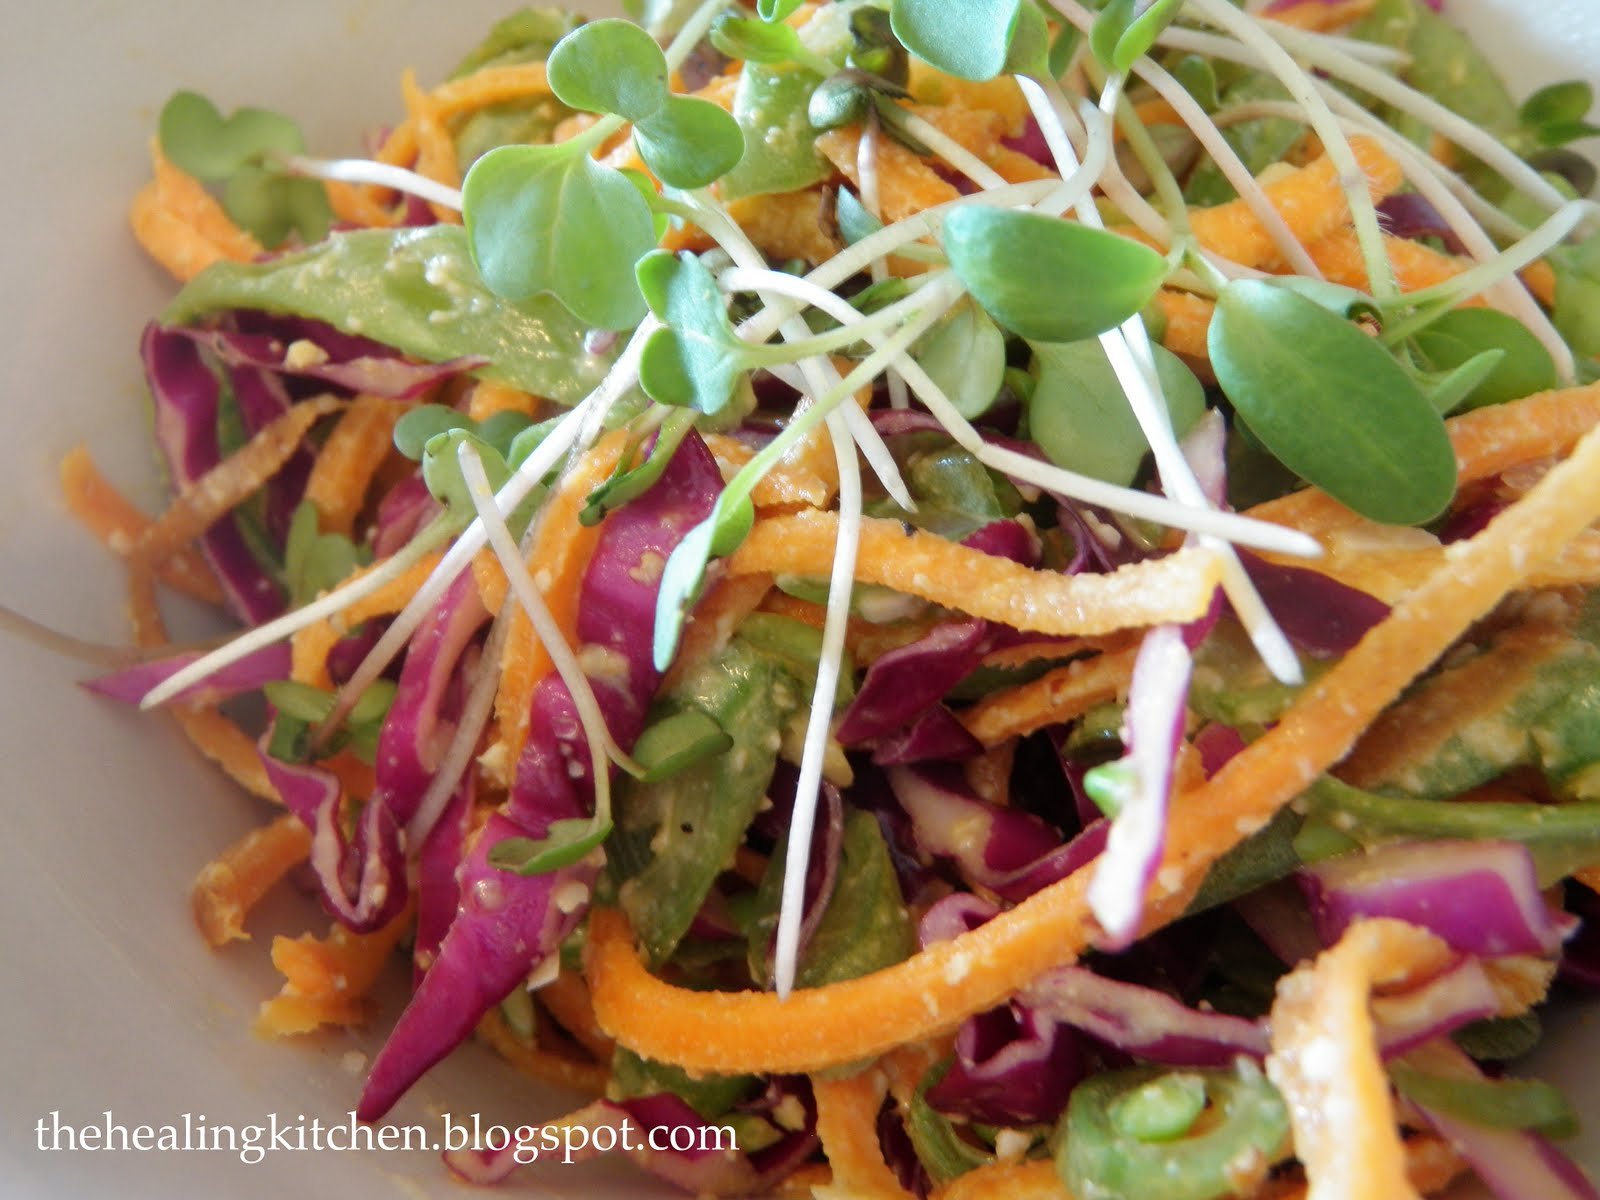 The Healing Kitchen: Green Bean Cole Slaw